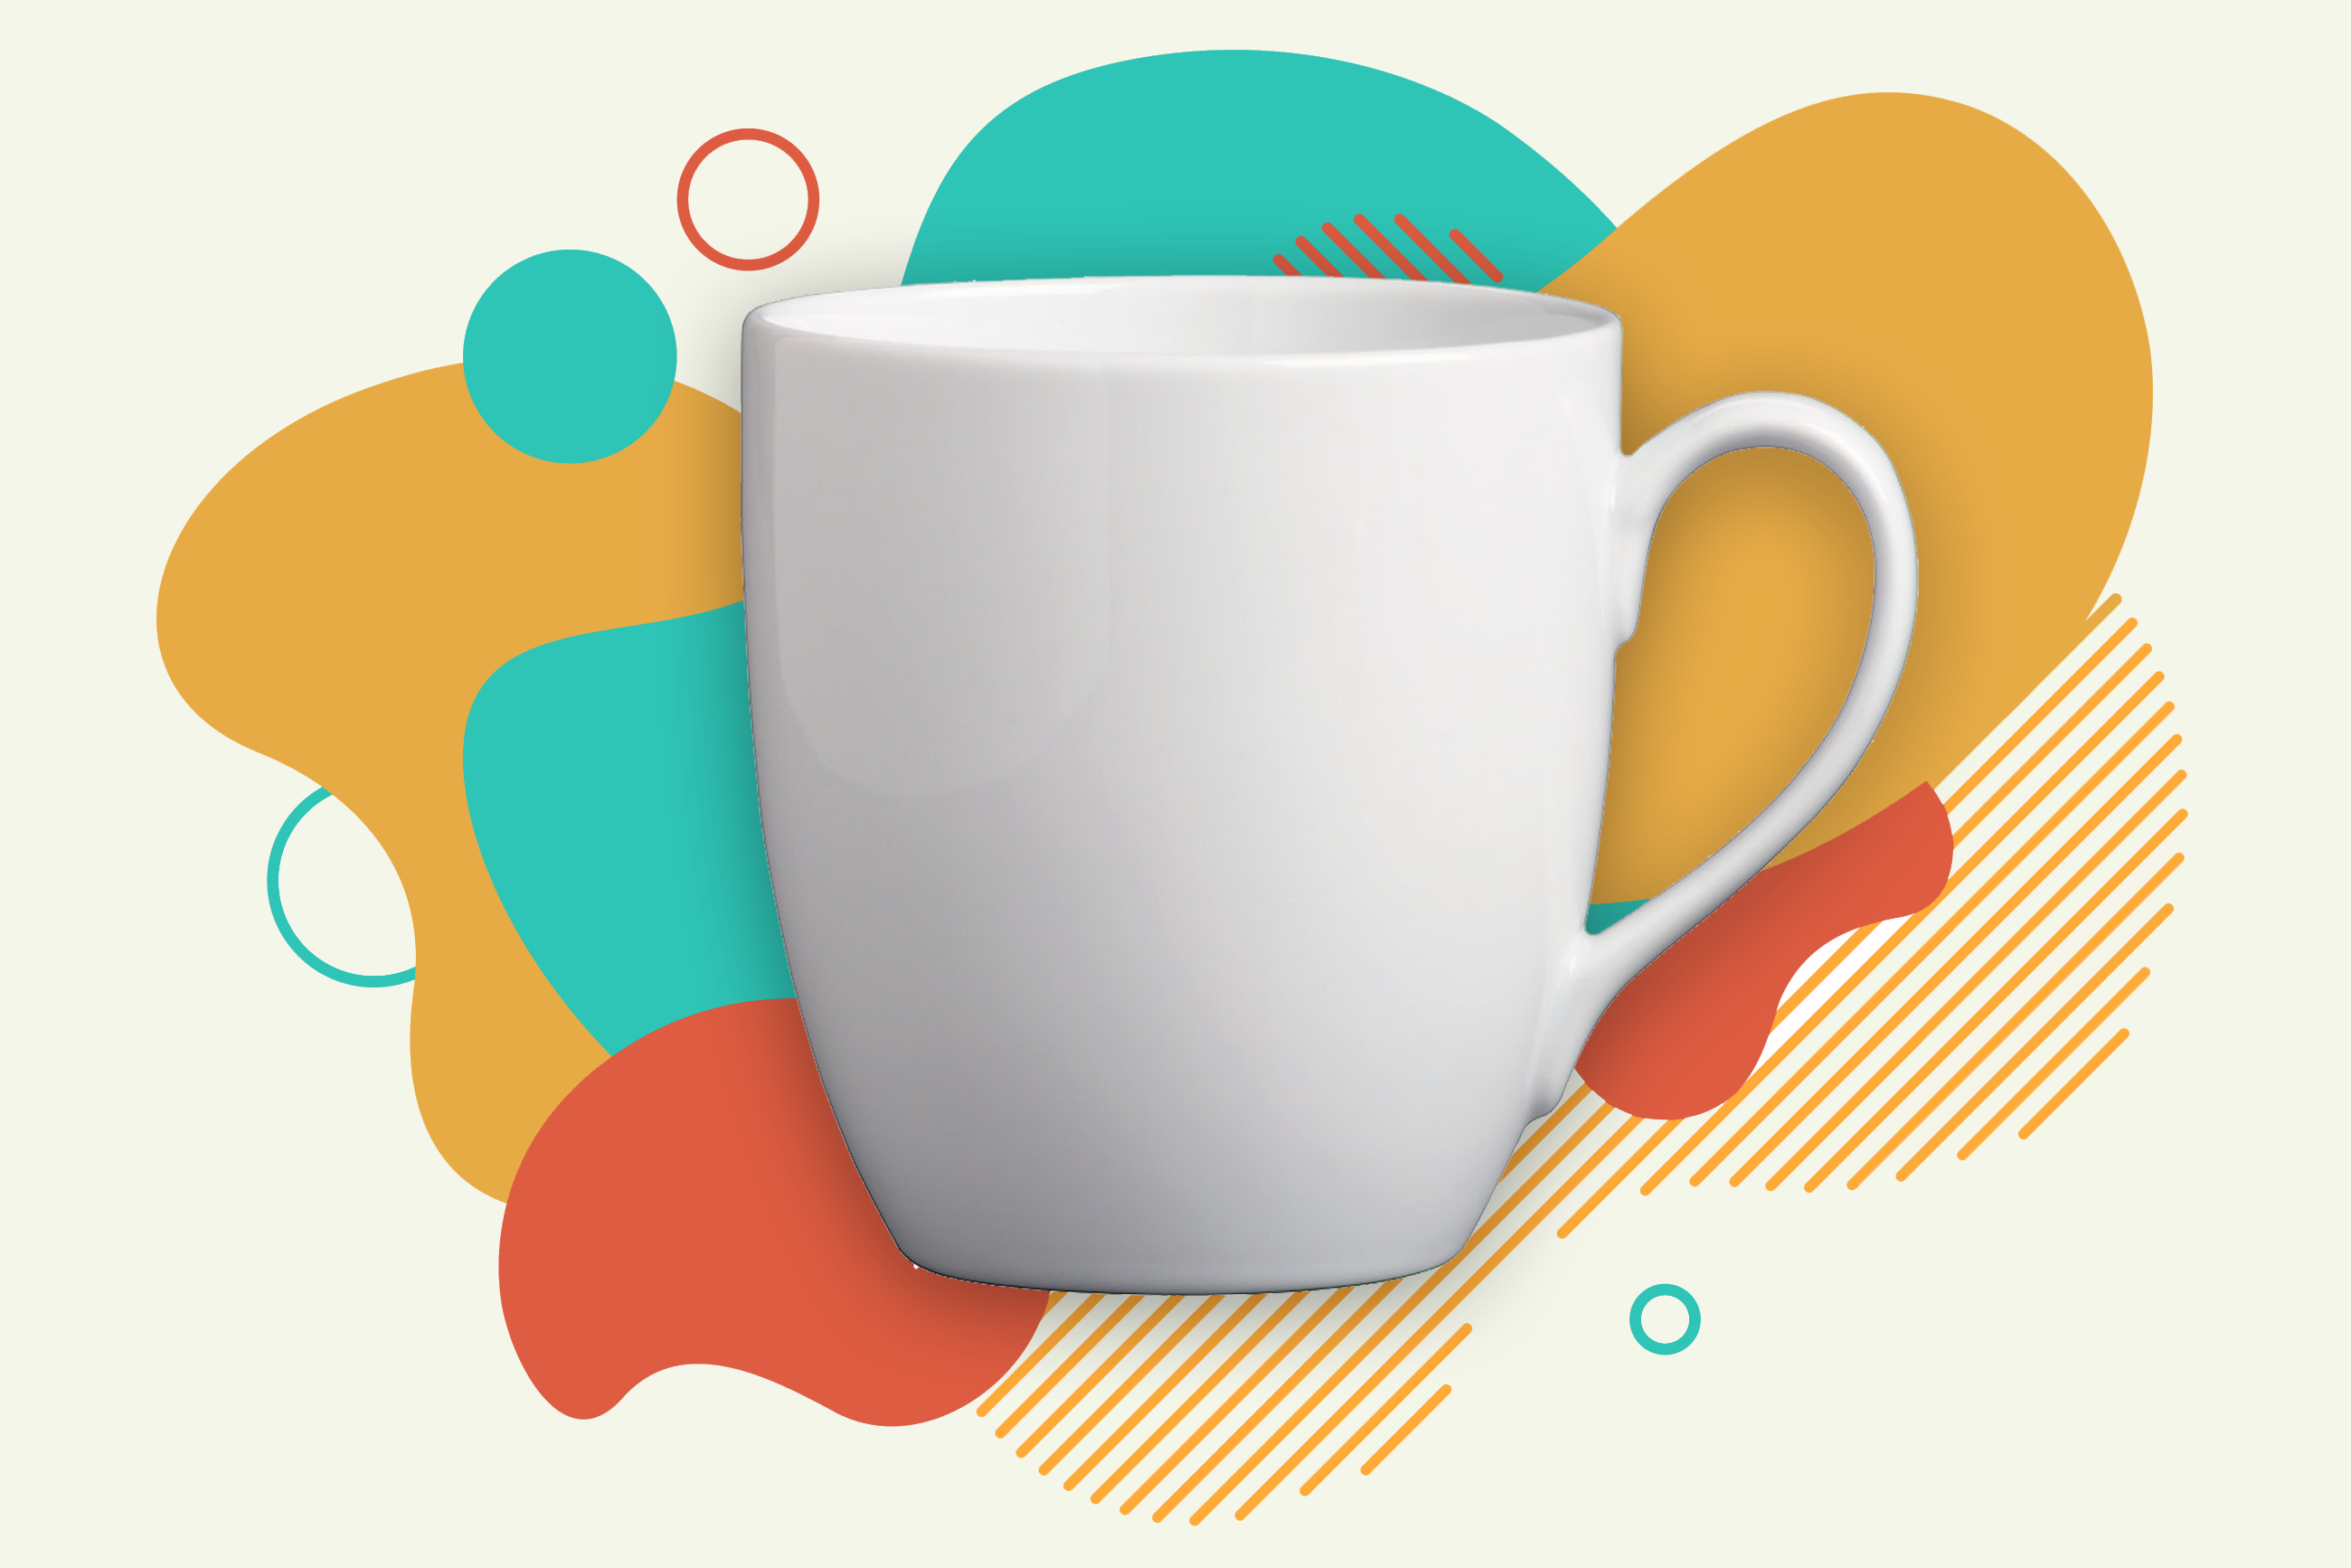 a white mug on a colorful abstract background